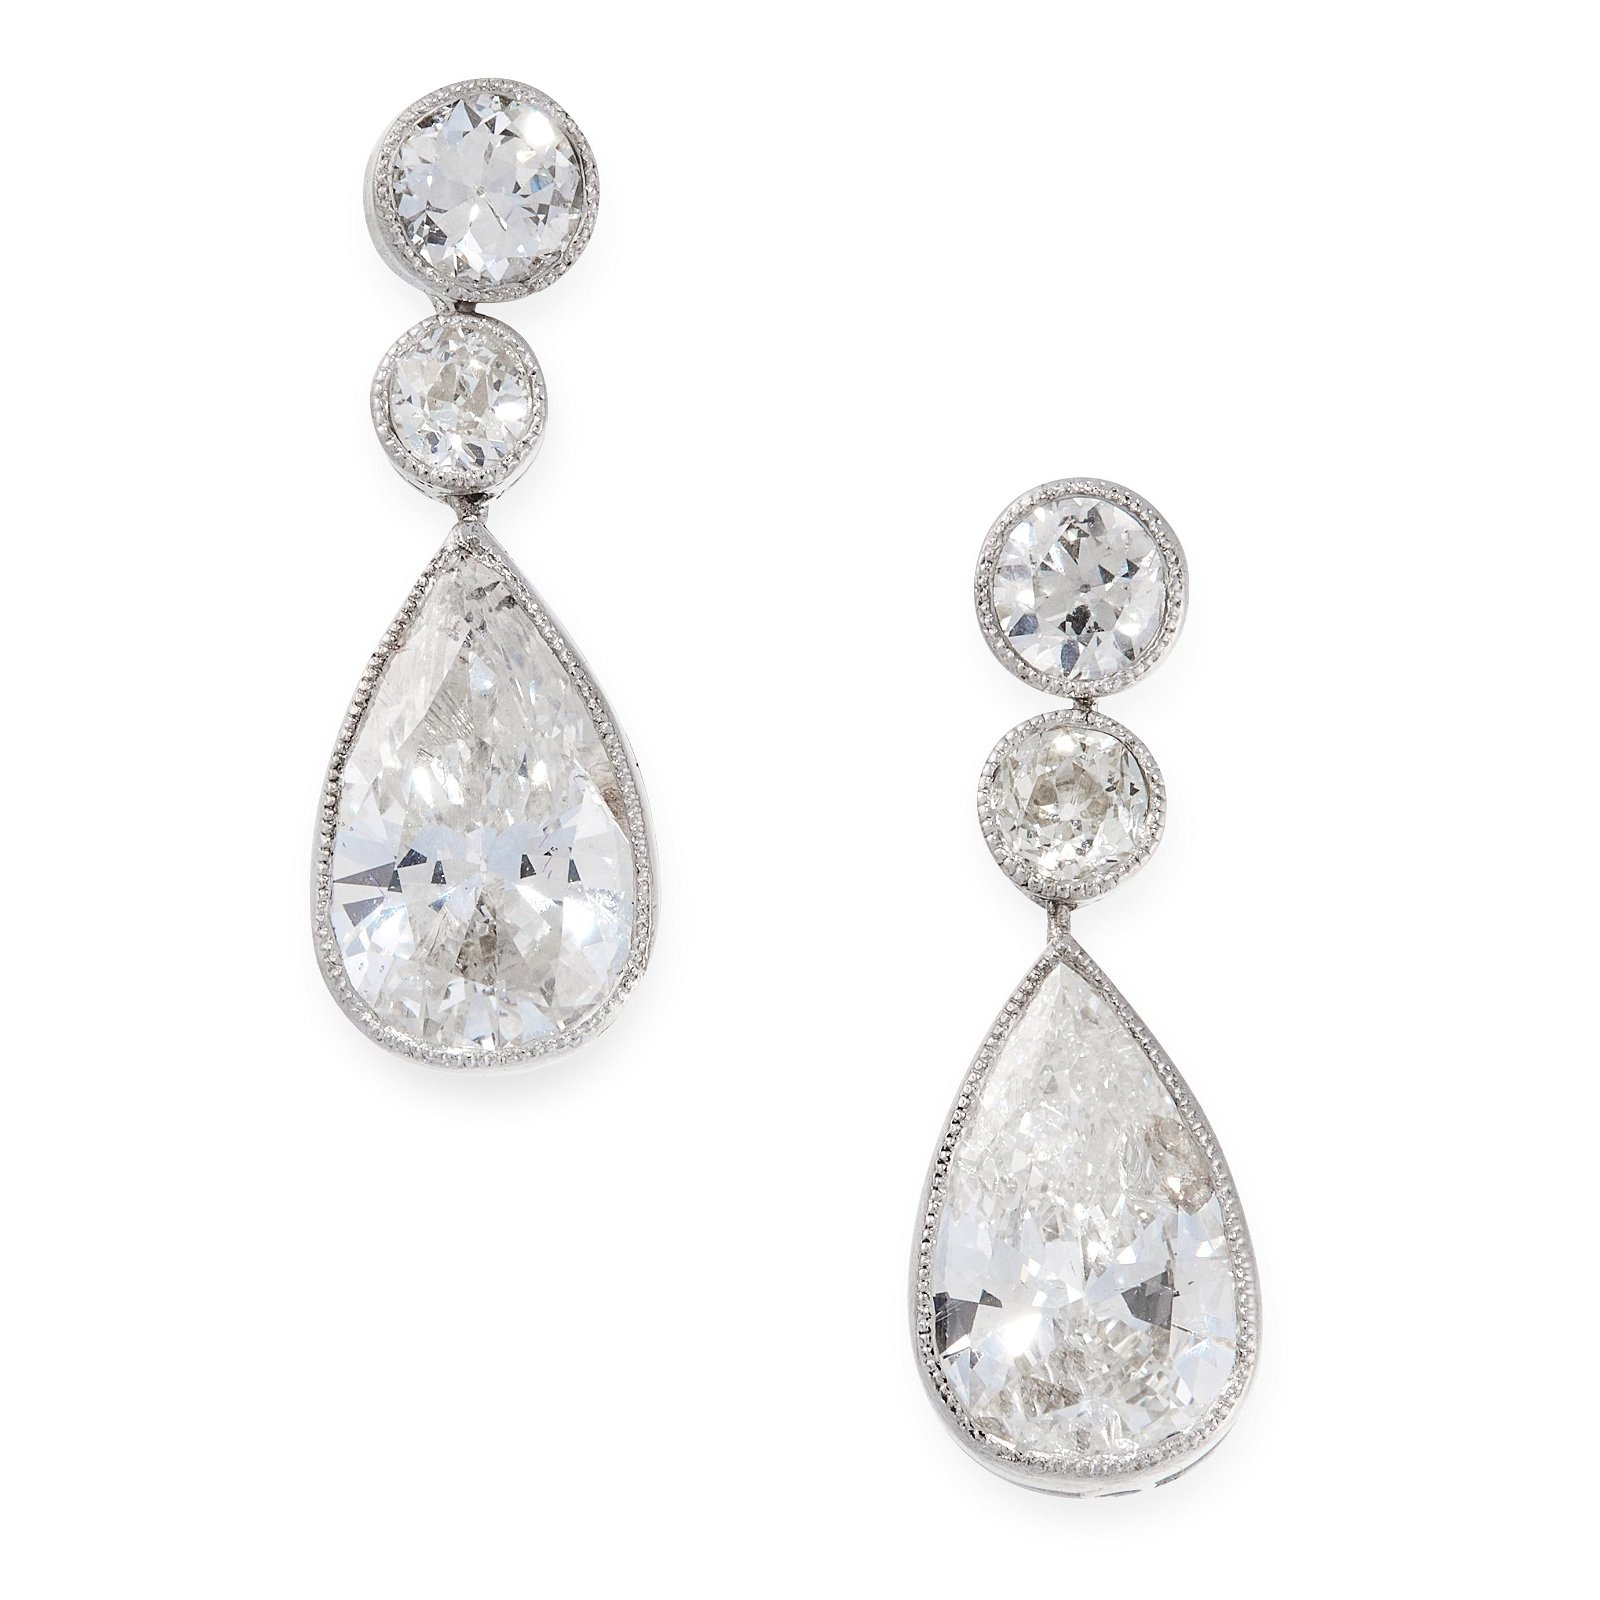 A PAIR OF DIAMOND DROP EARRINGS in 18ct white gold,